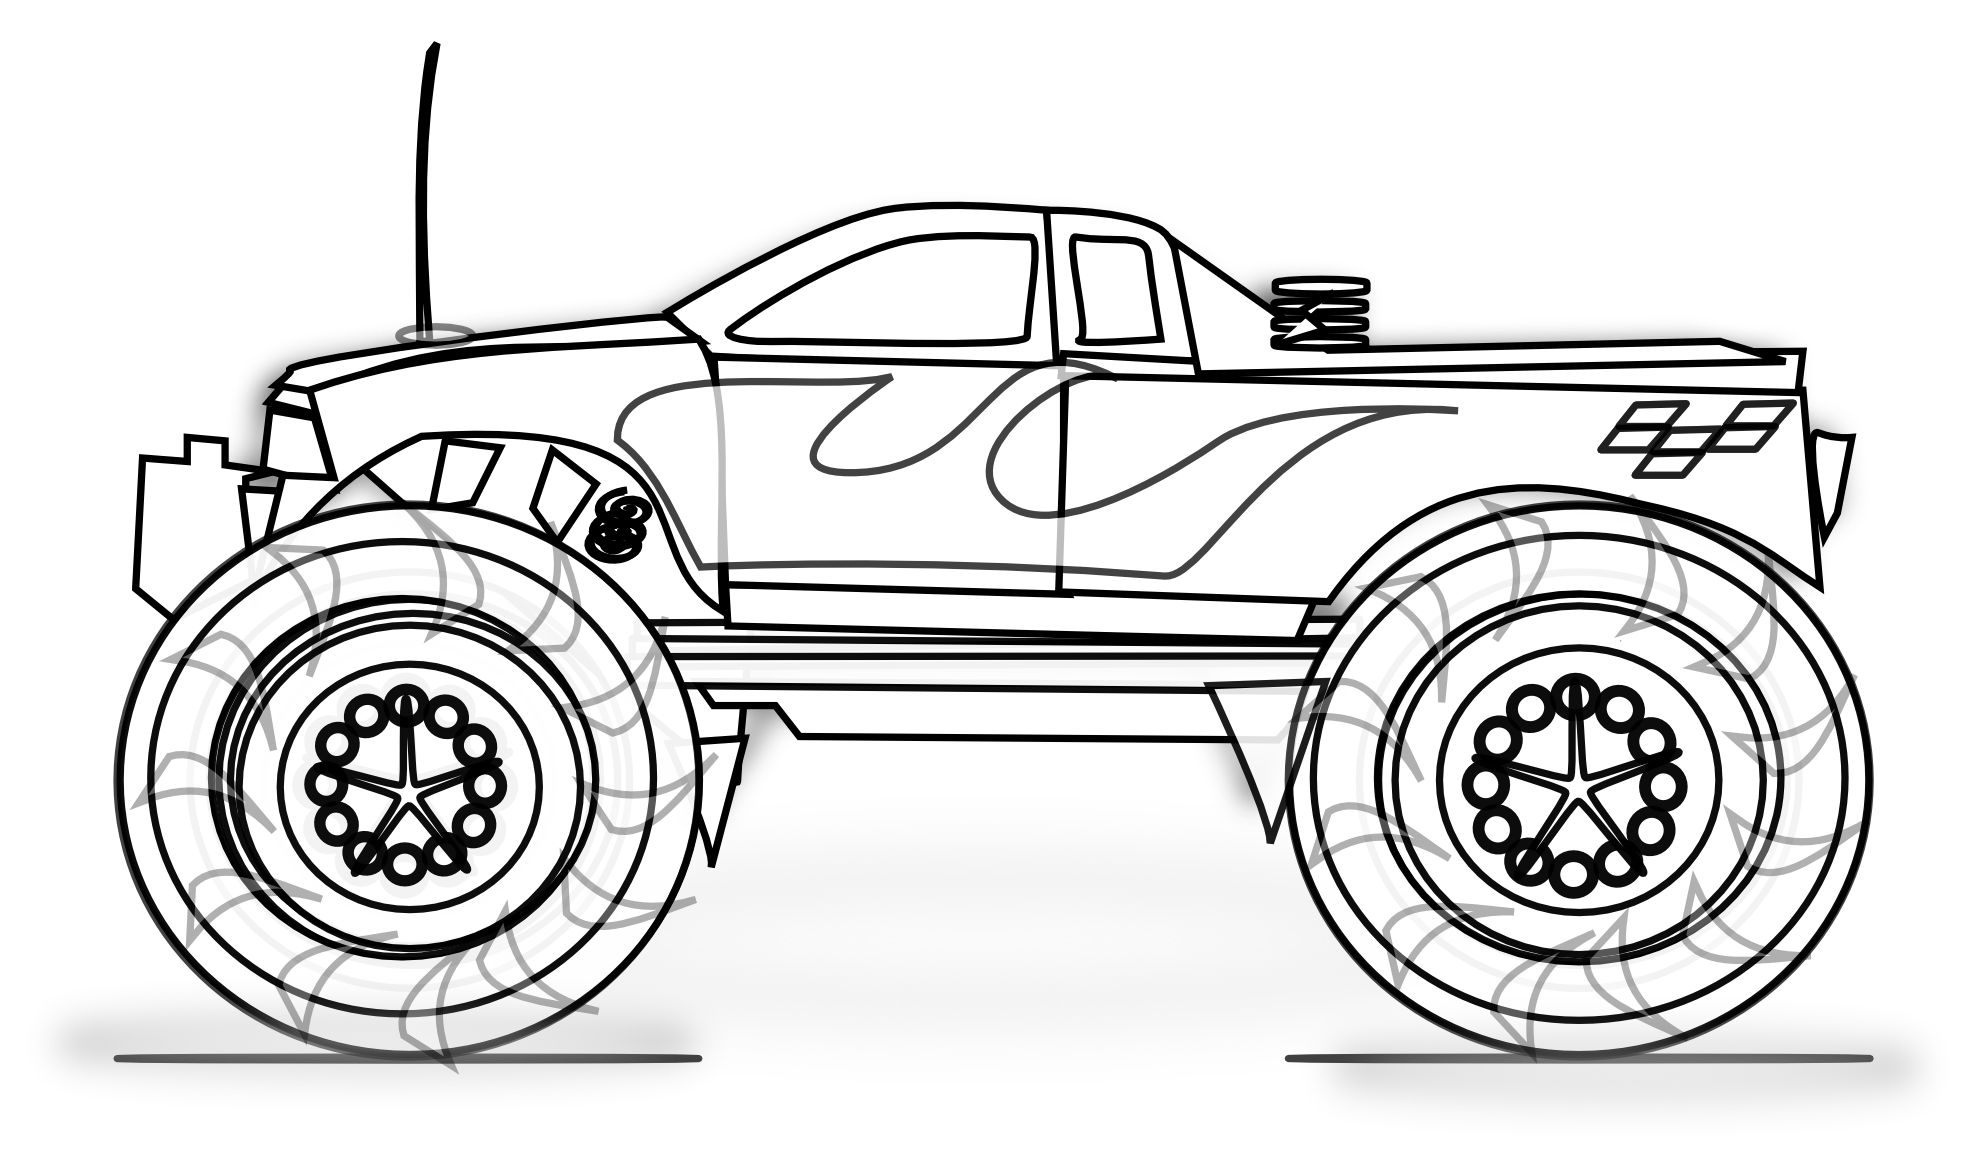 monster truck pictures to color free printable monster truck coloring pages for kids to color truck monster pictures